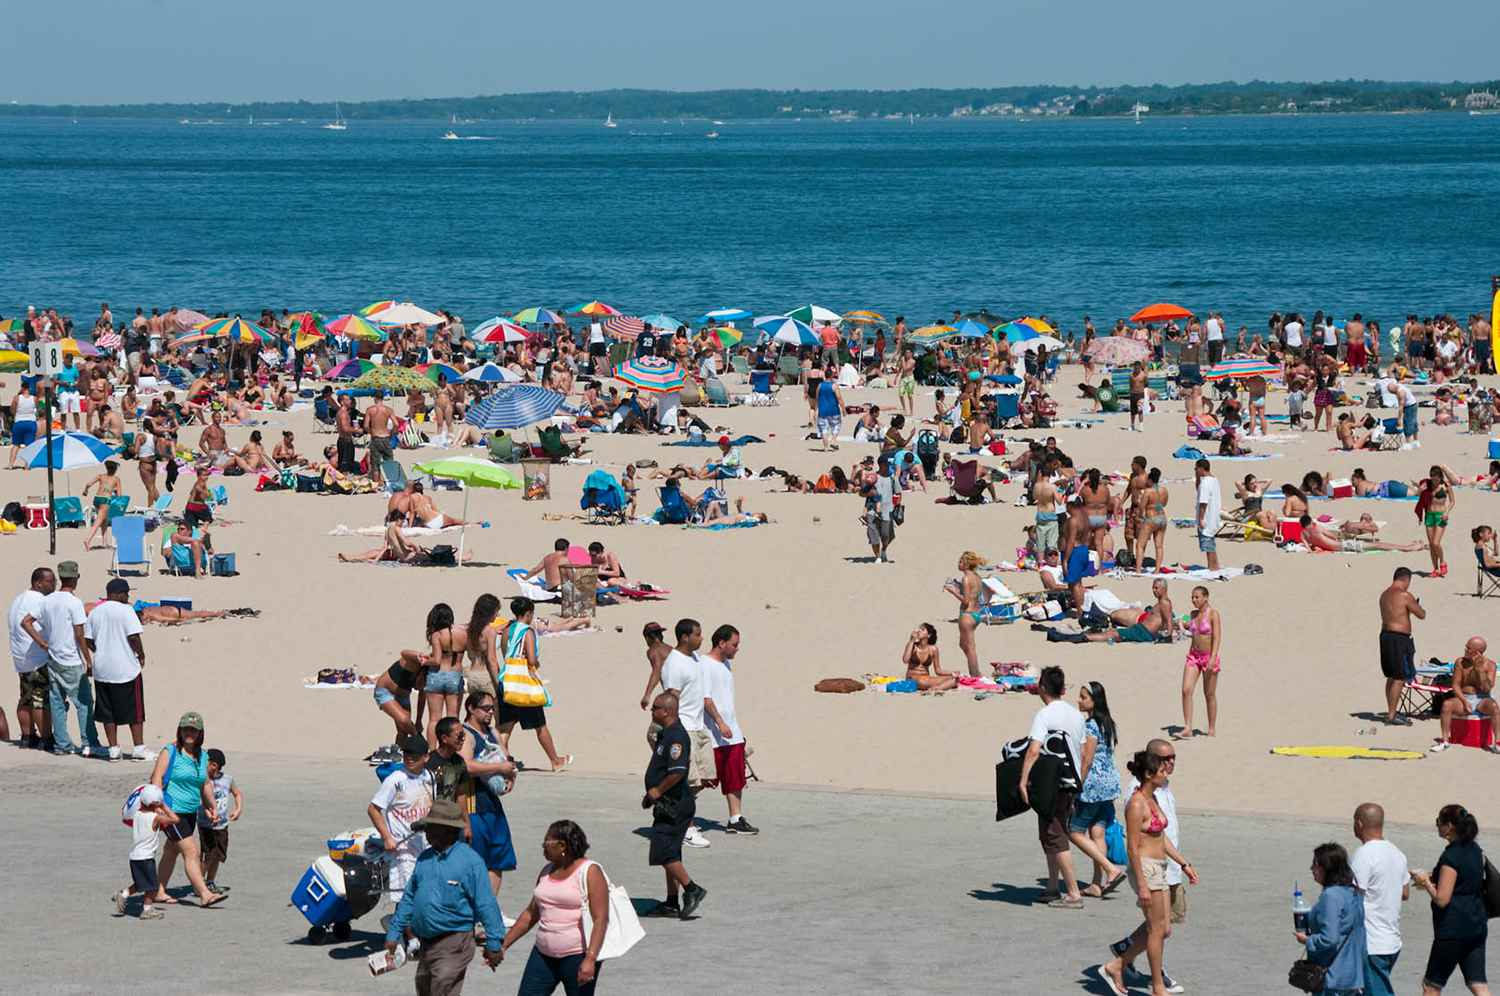 Orchard Beach in the Bronx